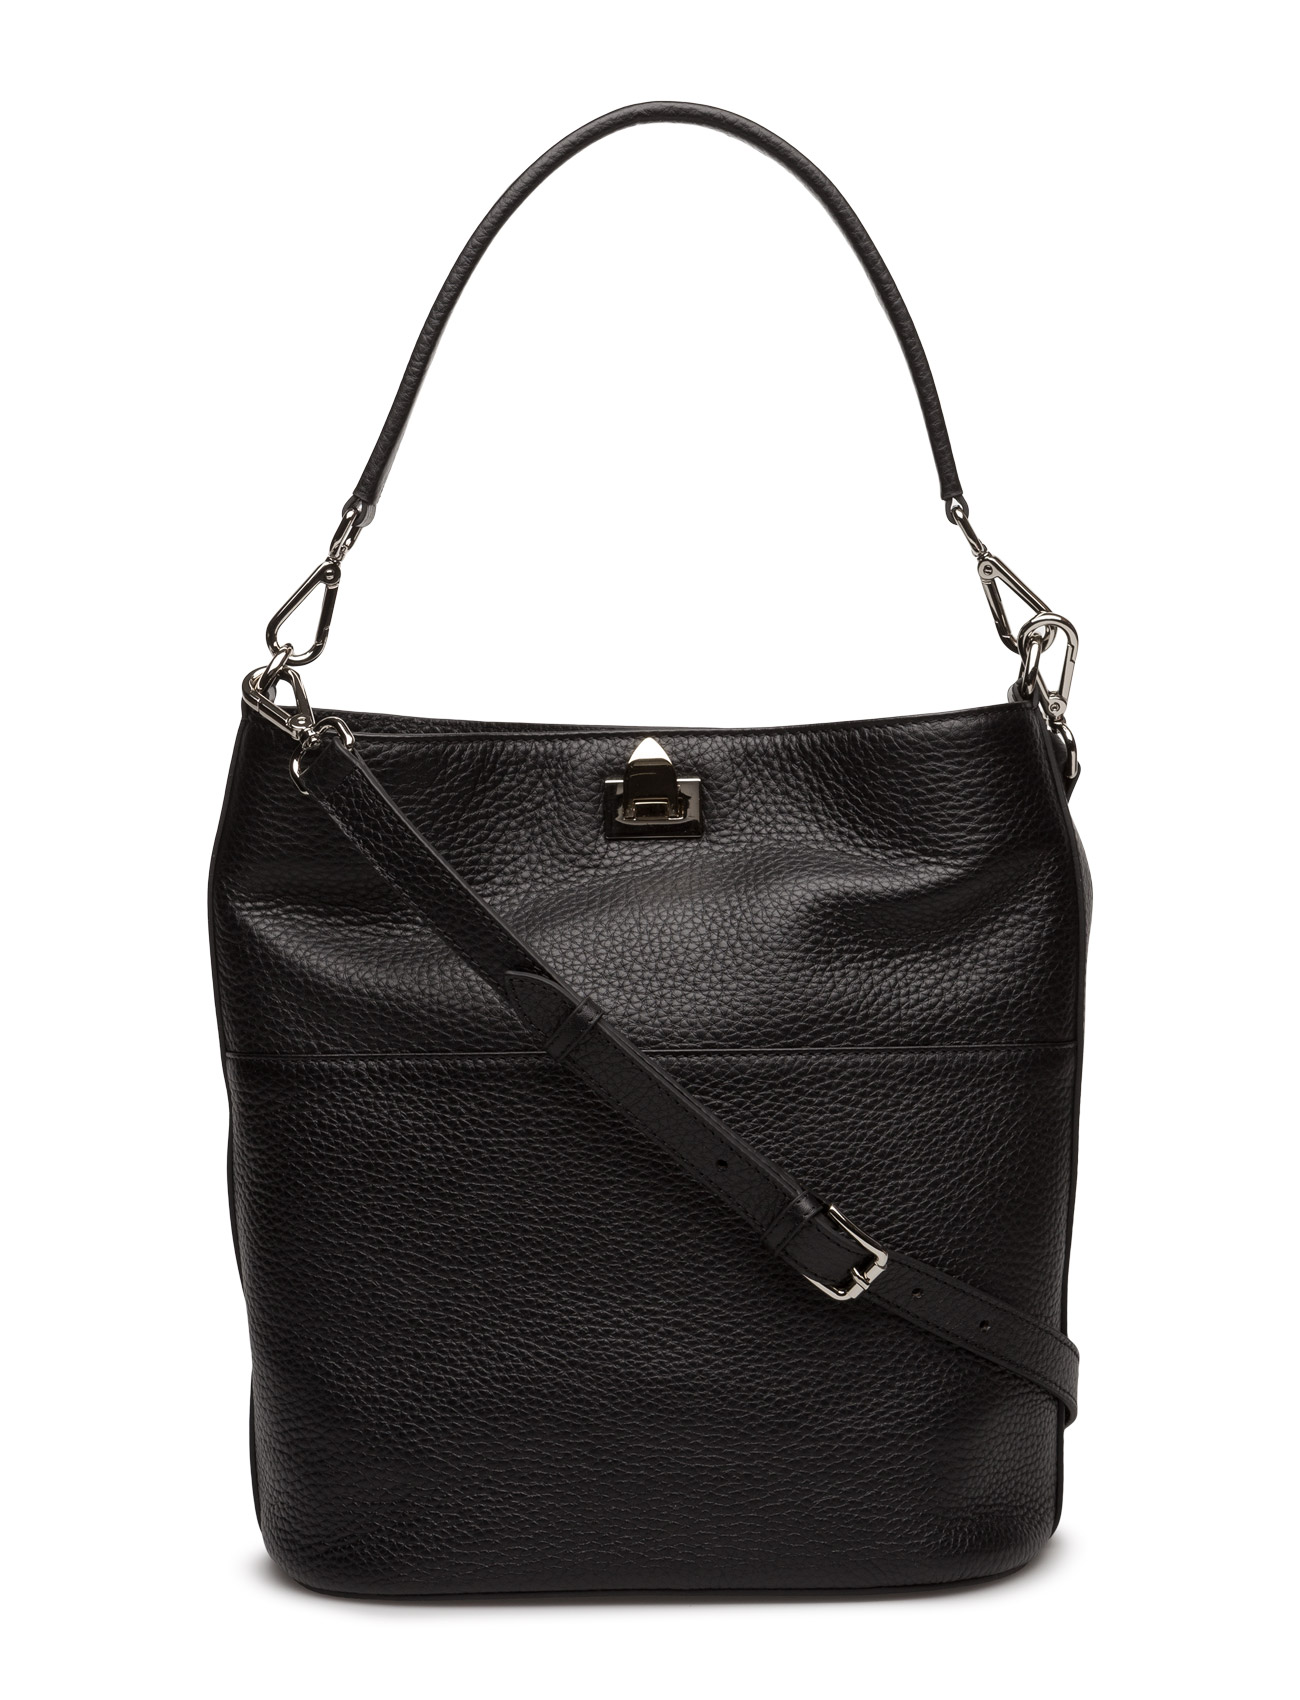 decadent – Big bucket bag w/buckle på boozt.com dk